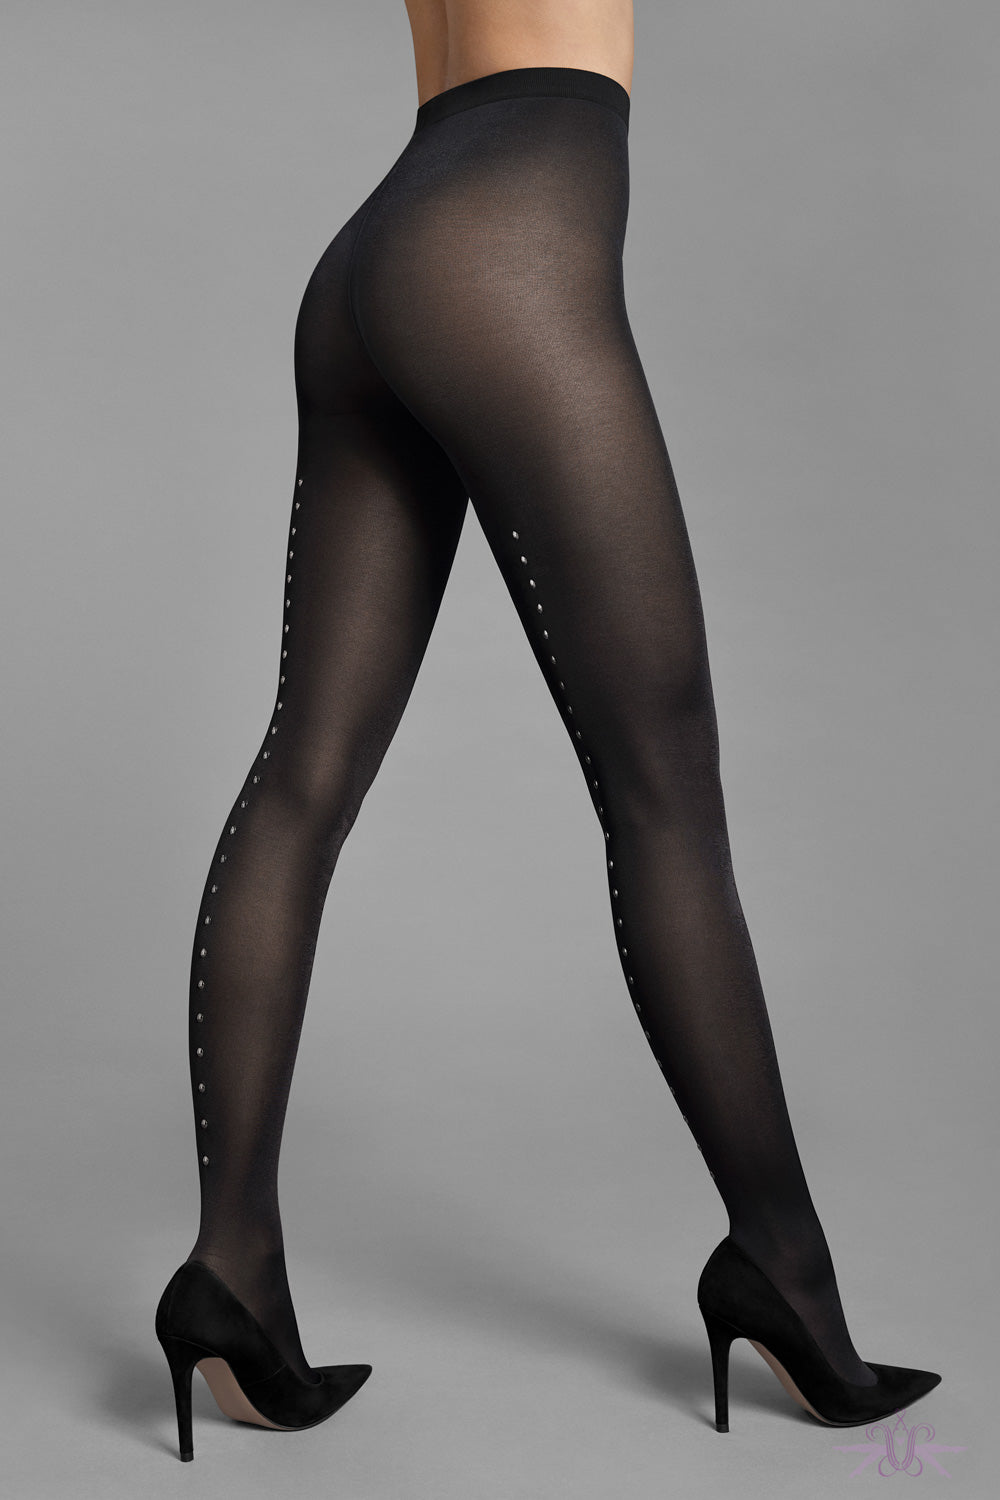 Wolford Nobilitas Tights